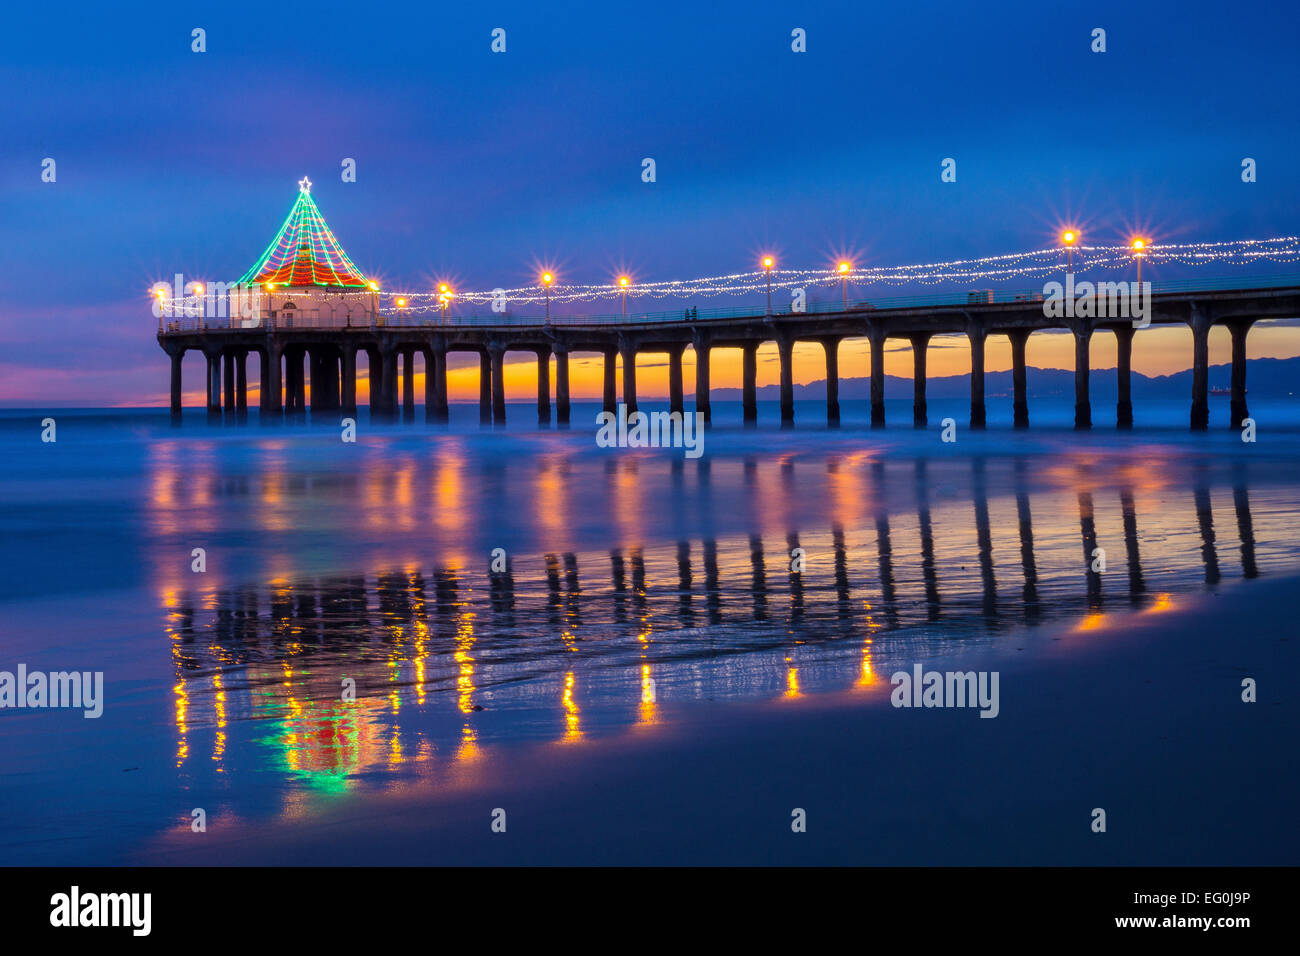 USA, California, Manhattan Beach, Illuminated pier at dusk during Christmas time - Stock Image